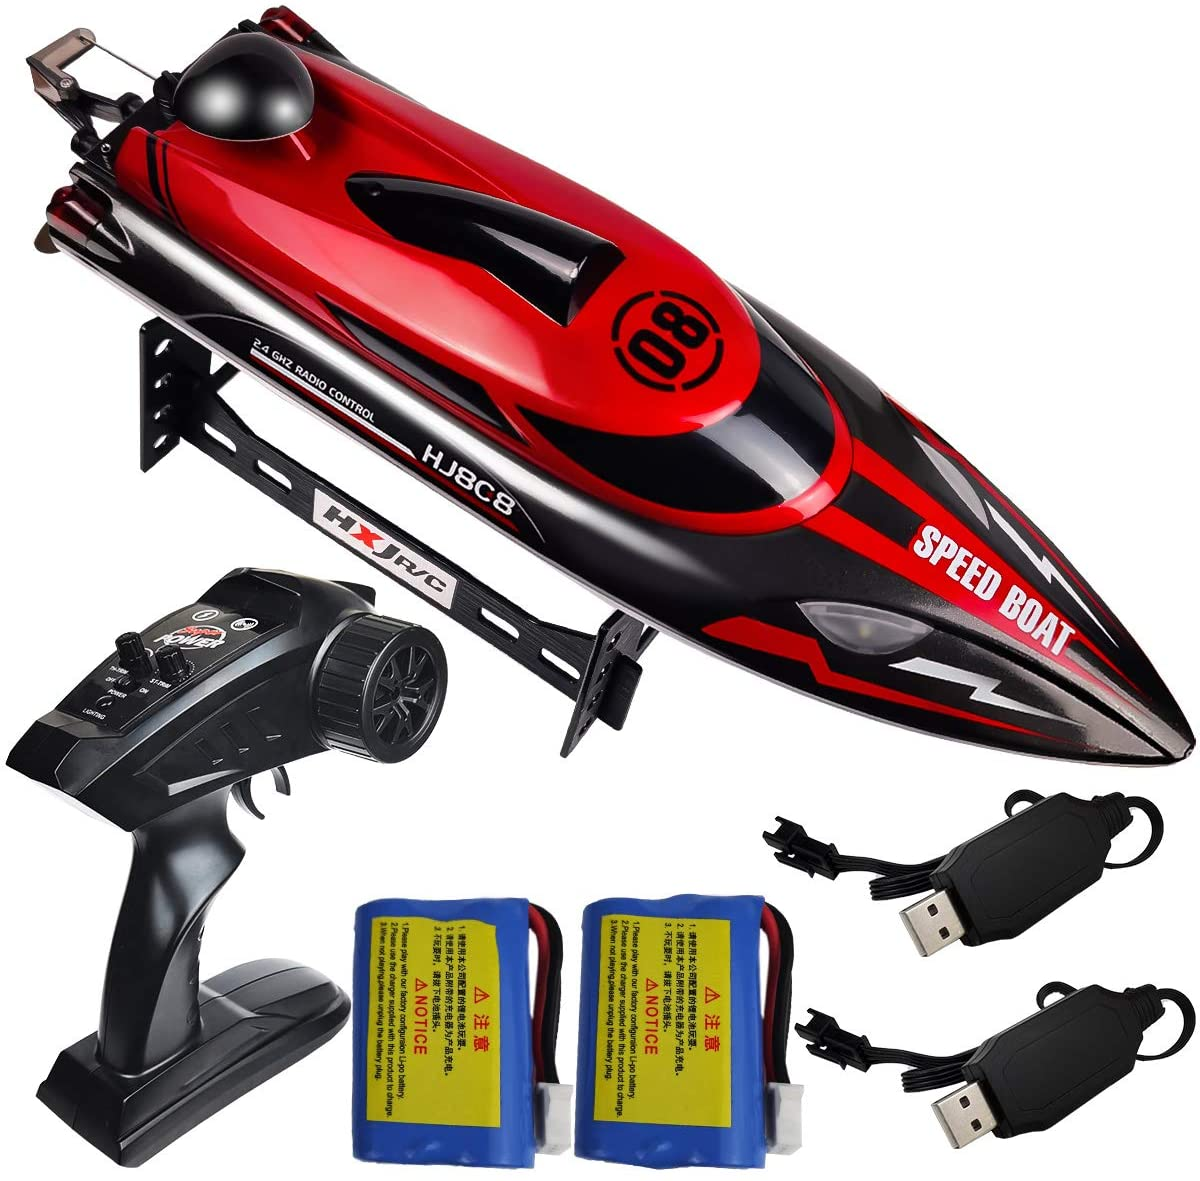 HONGXUNJIE 2.4Ghz High Speed RC Boat-HJ808 18mph Remote Control Racing Boat for Kids and Adults for Lakes and Pools with Double Batteries Double Charger Cables (RED)